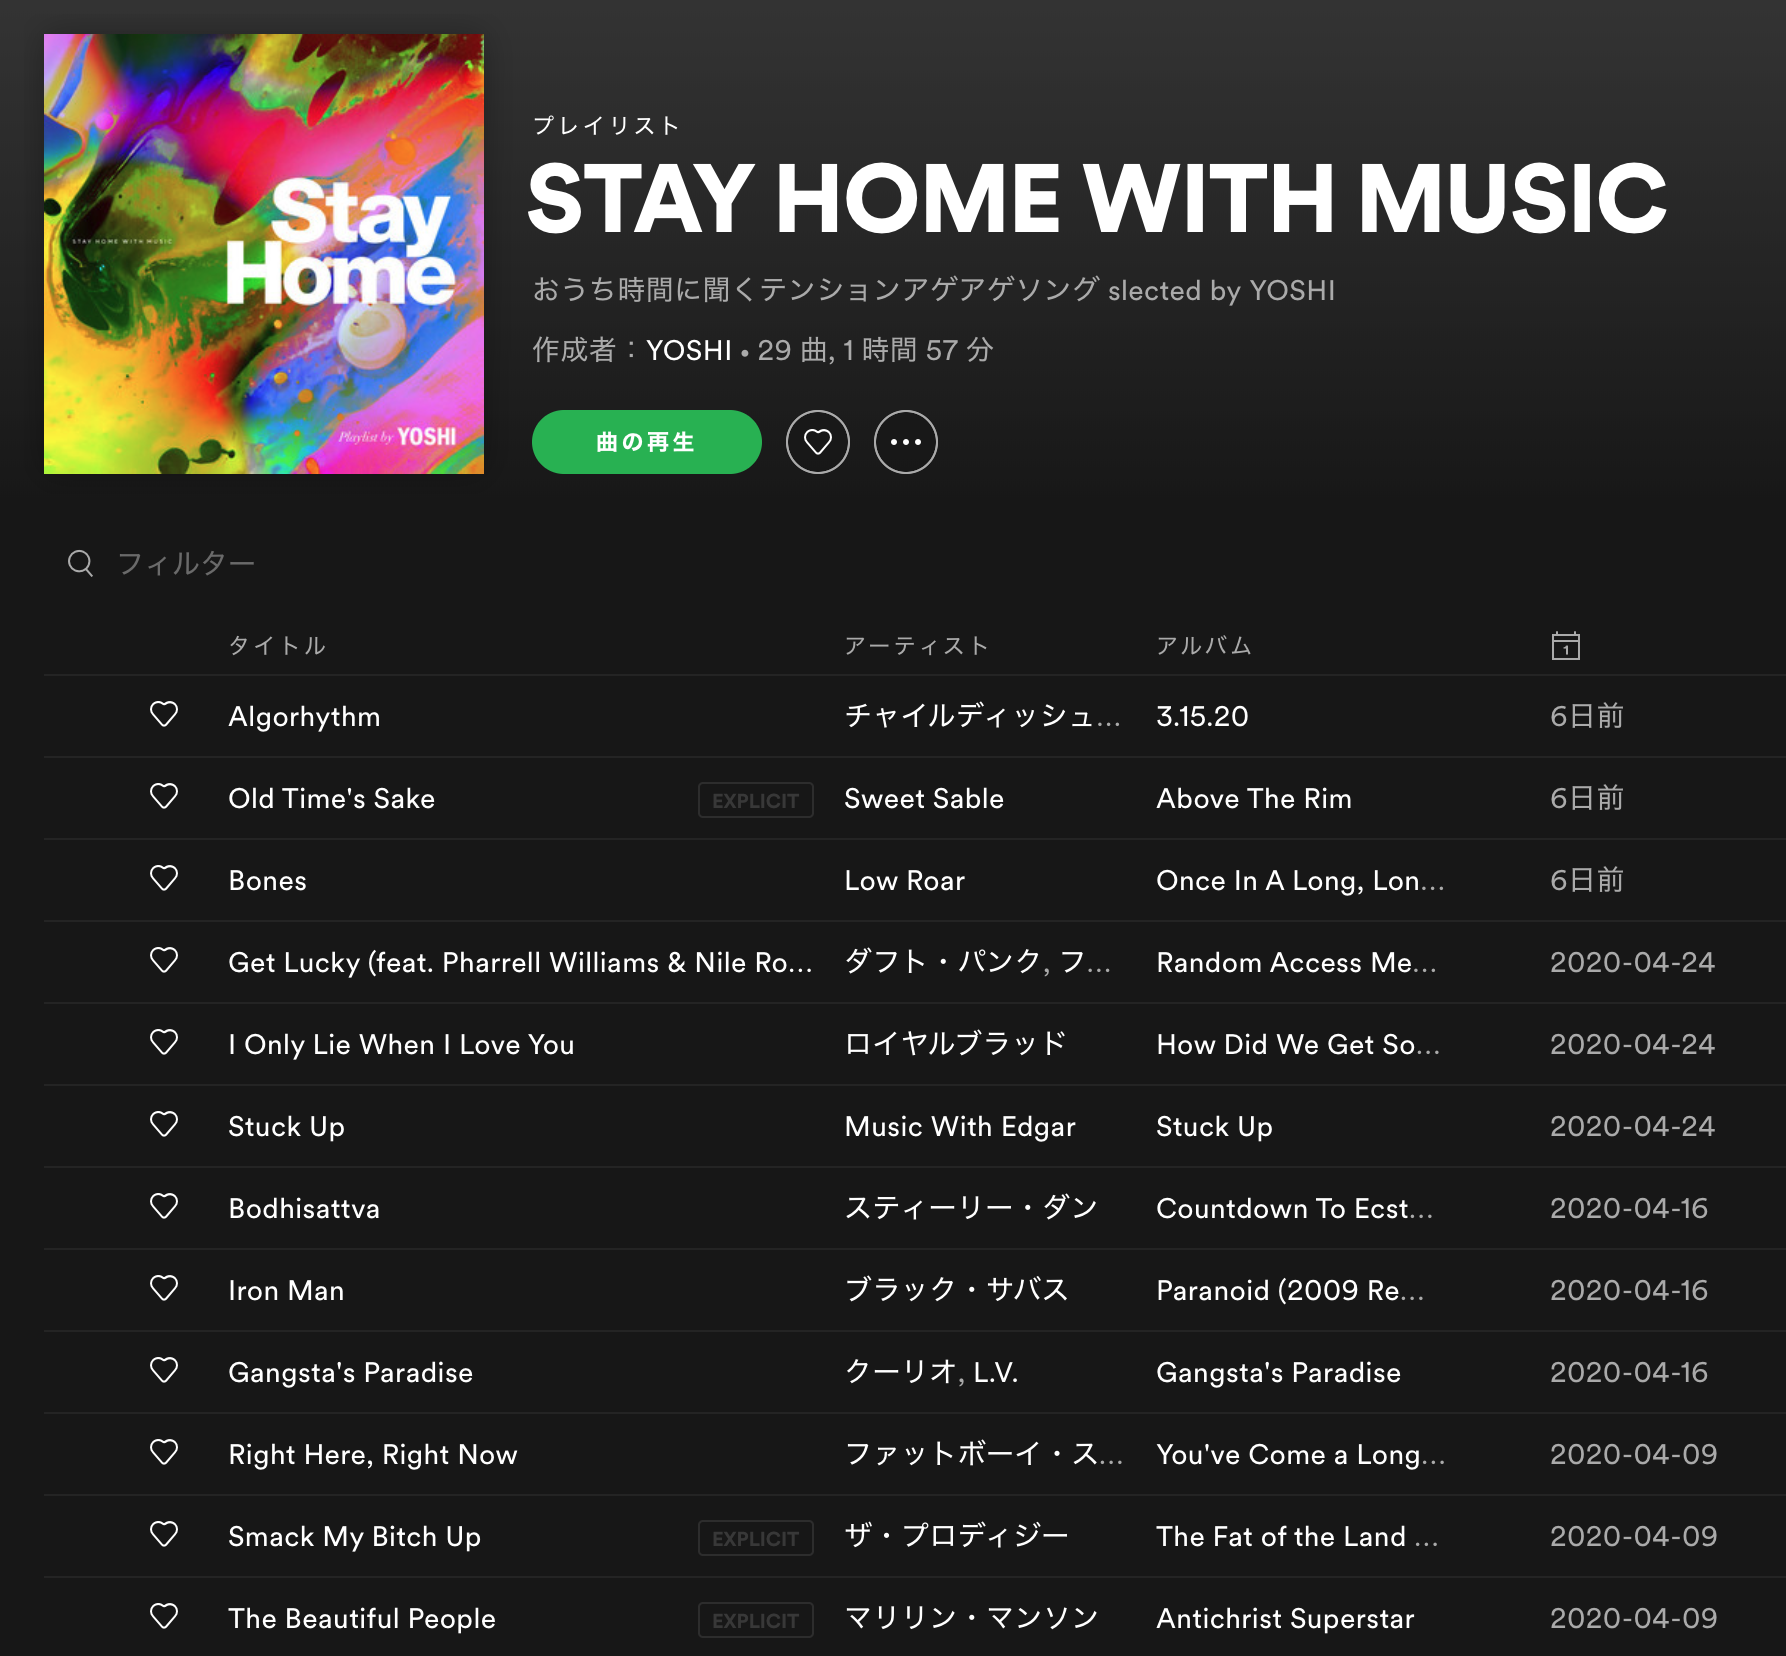 Stay Home With Music selected by Yoshi